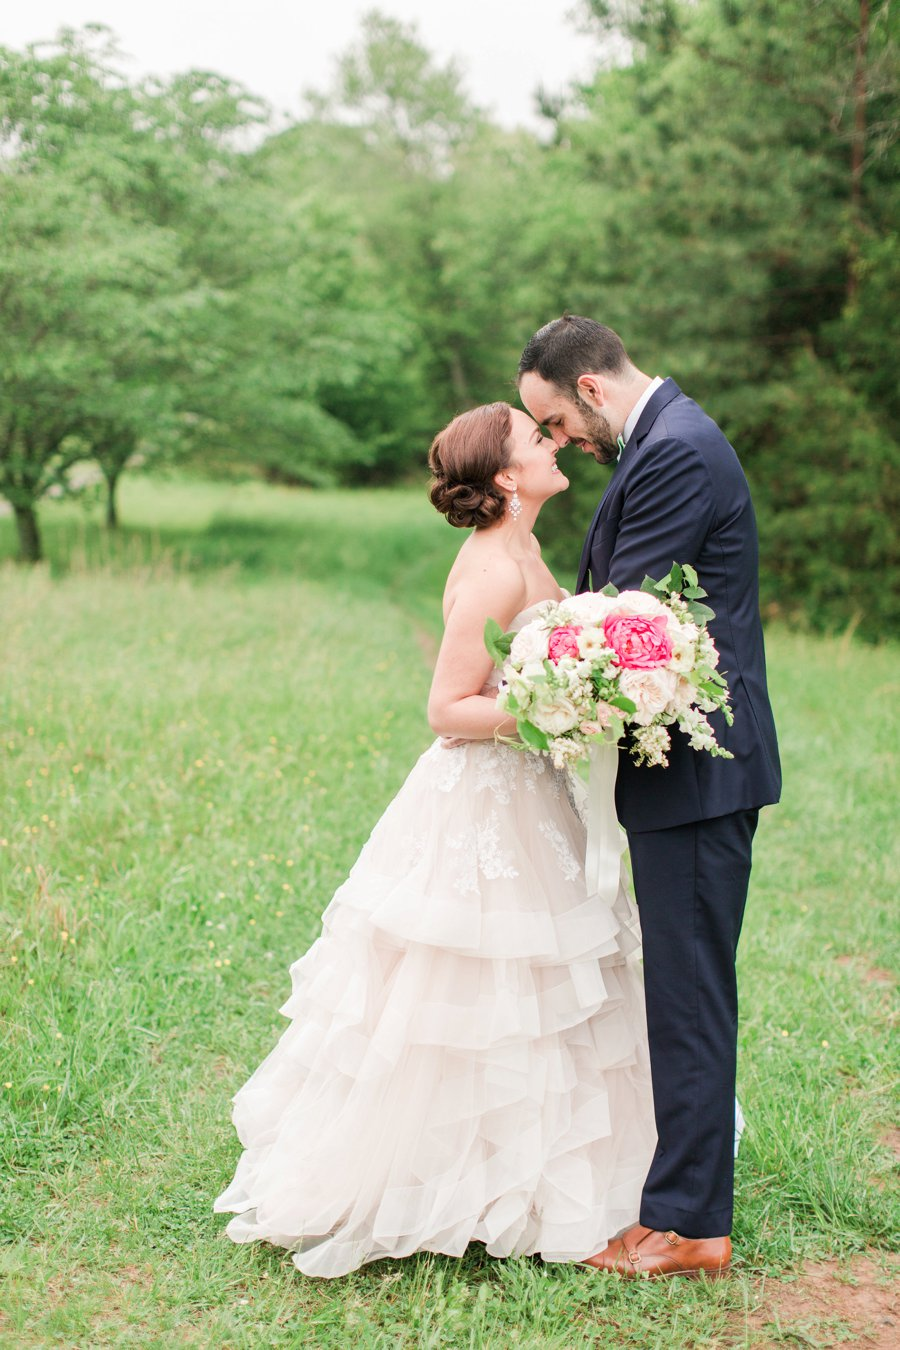 Pink & White Romantic Wedding Ideas via TheELD.com